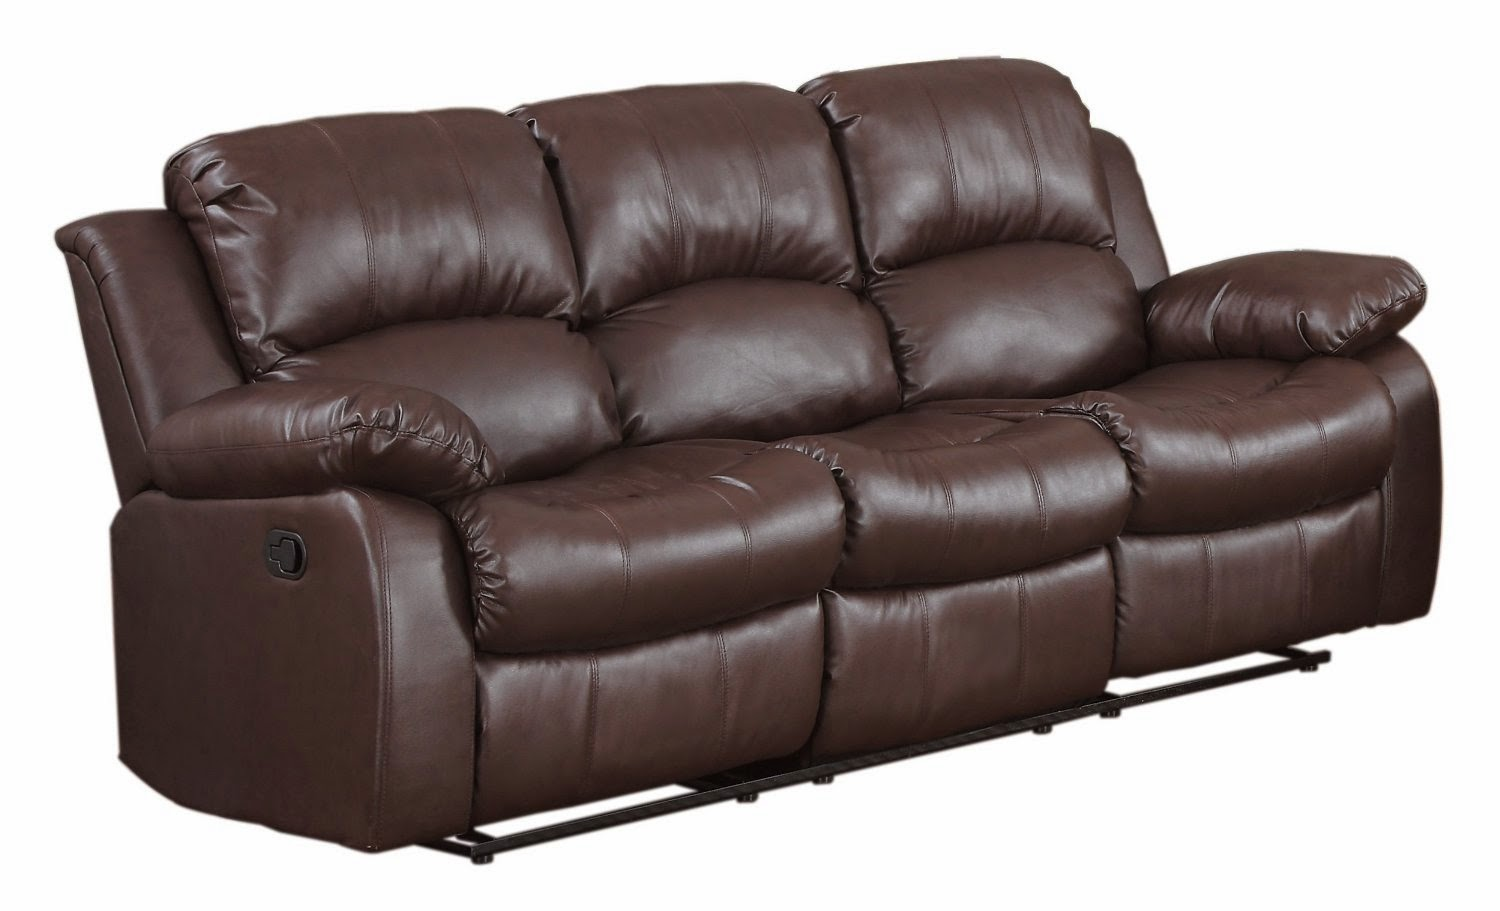 Homelegance 9700brw 3 Double Costco Leather Reclining Sofa Set